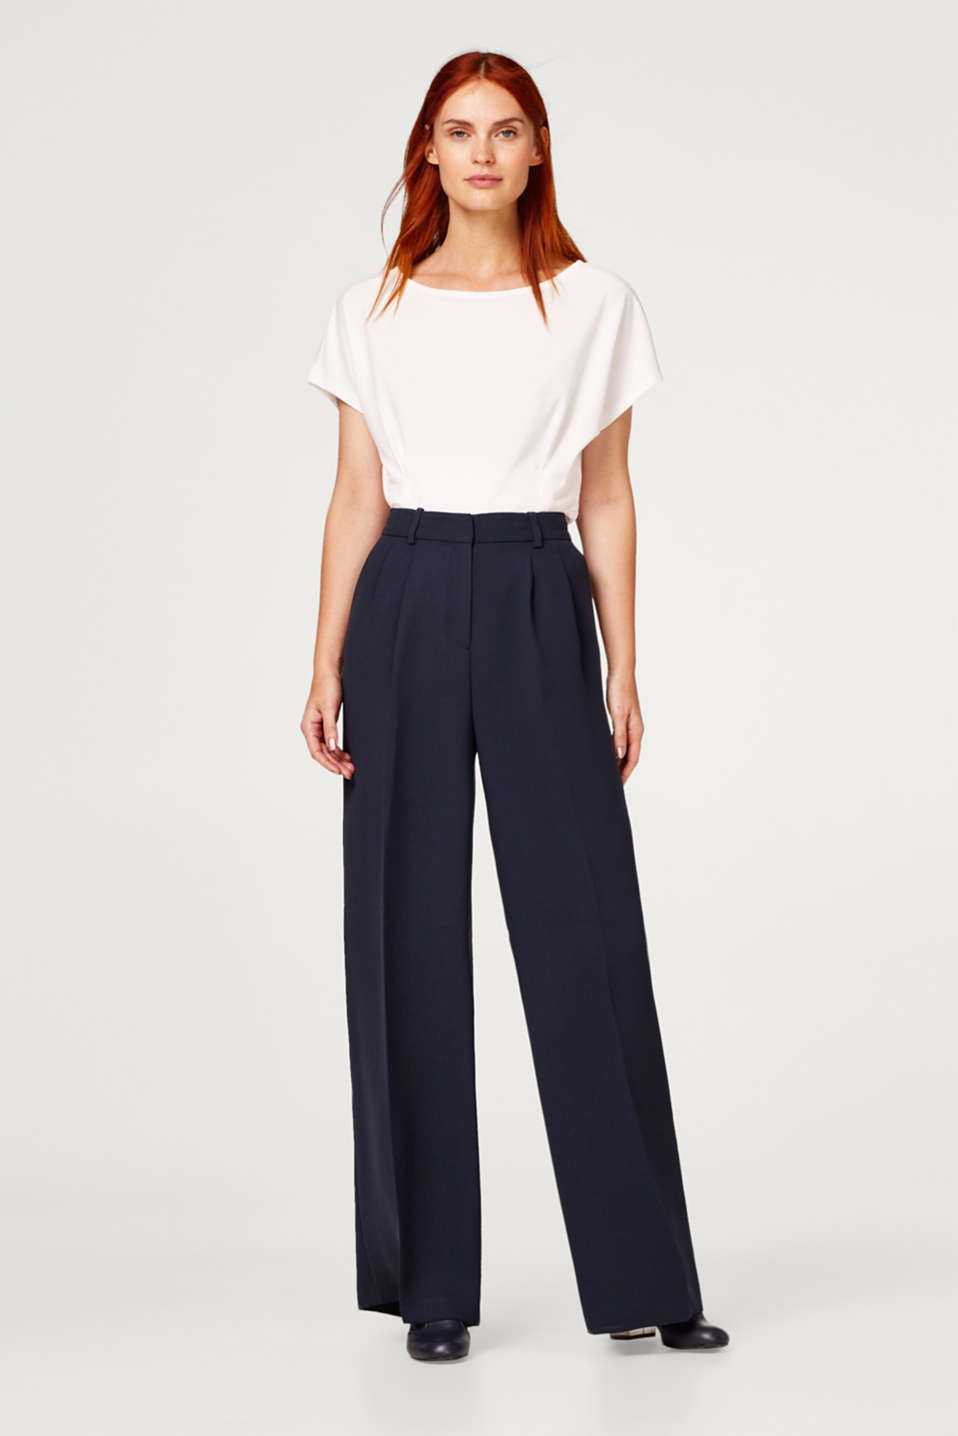 Esprit - Palazzo trousers with pressed pleats